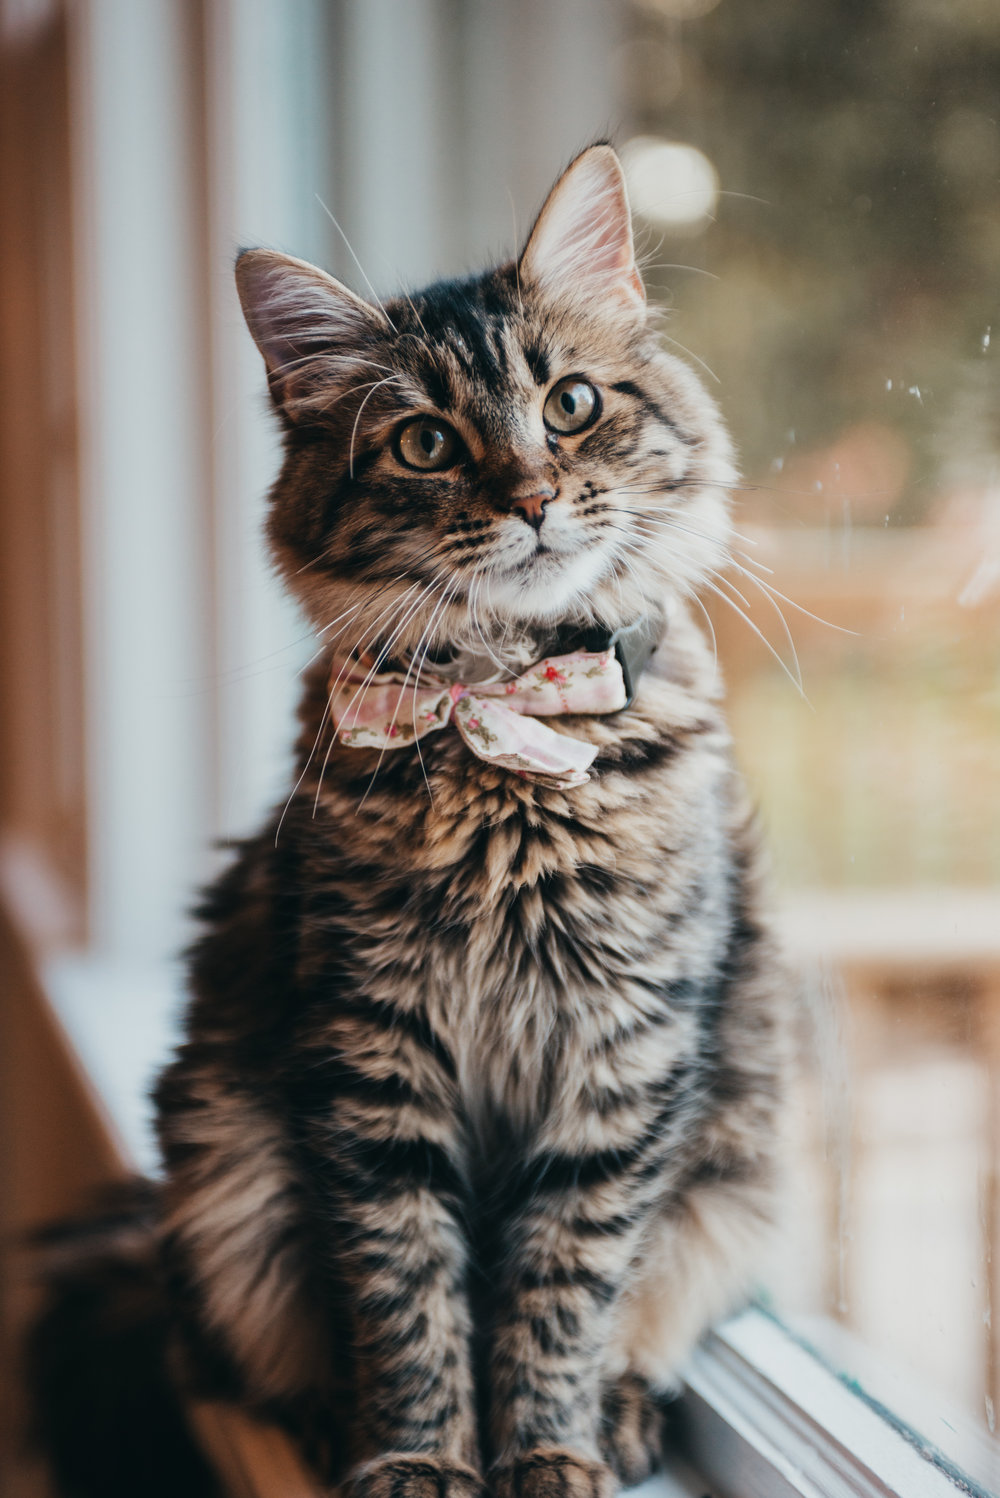 My Darling Hilda - The Maine Coon Kitty